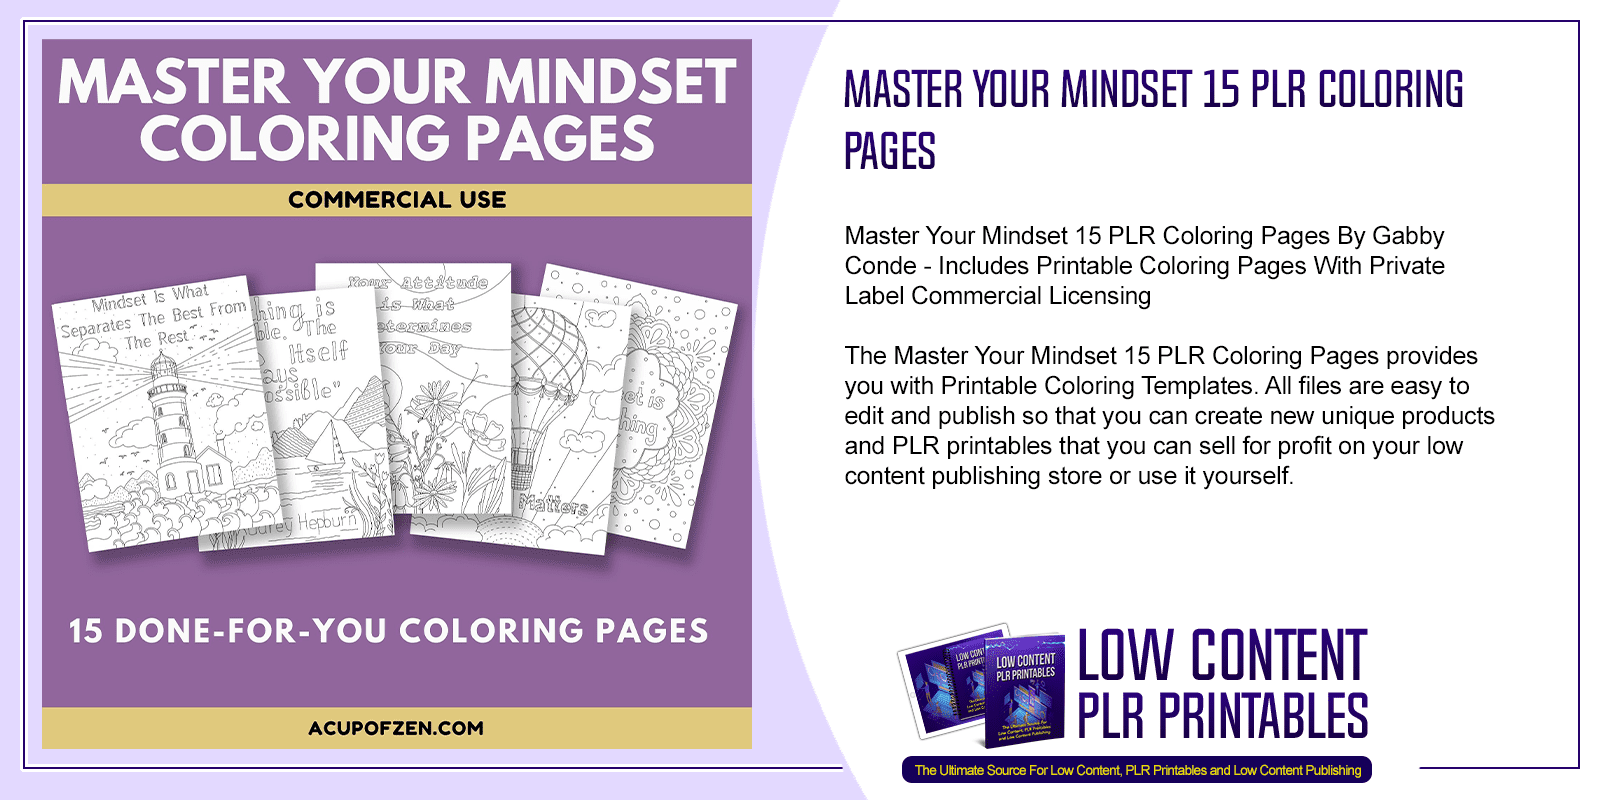 Master Your Mindset 15 PLR Coloring Pages